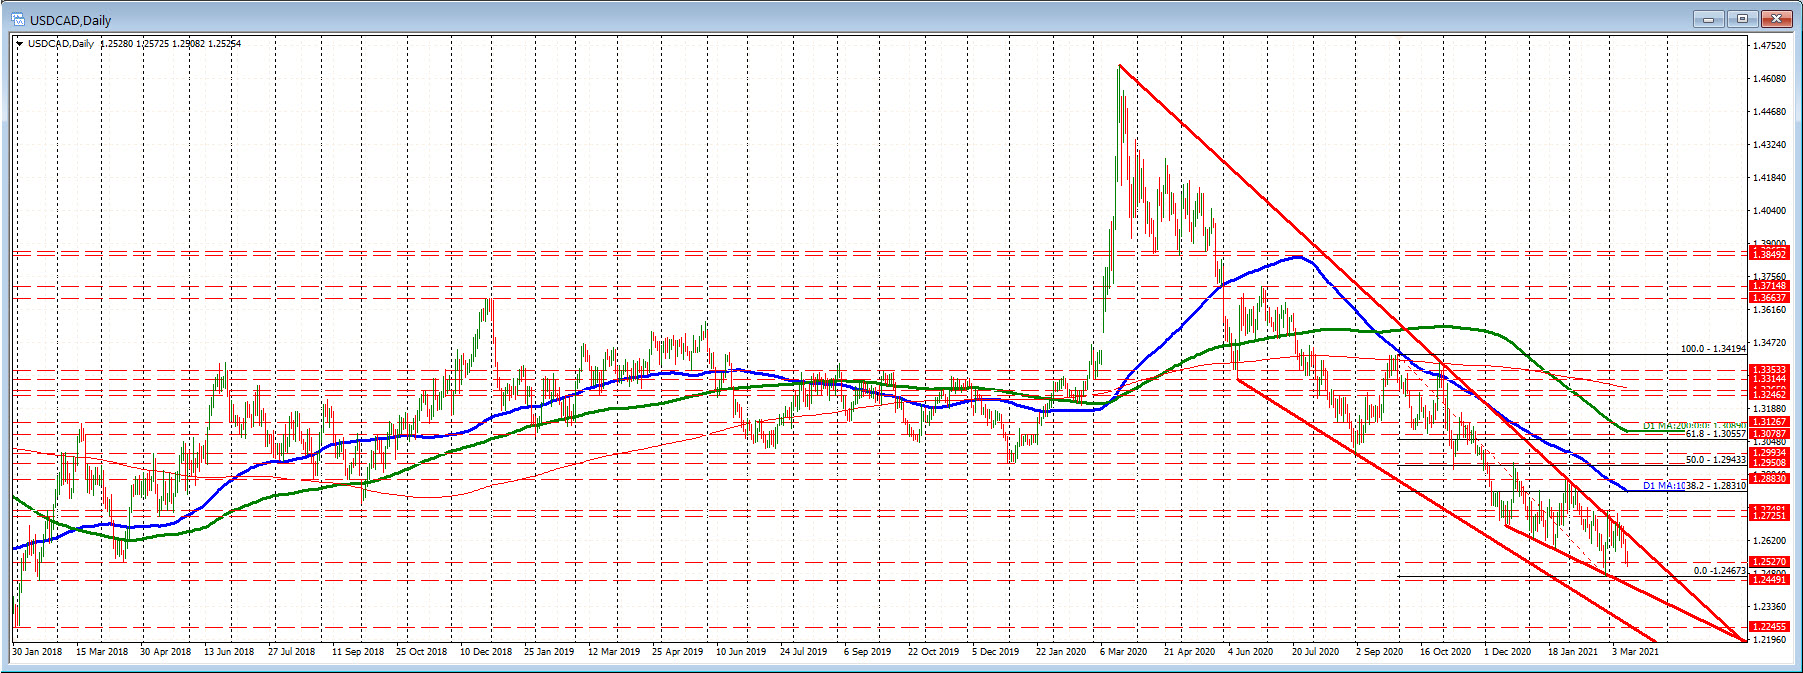 USDCAD on the daily chart